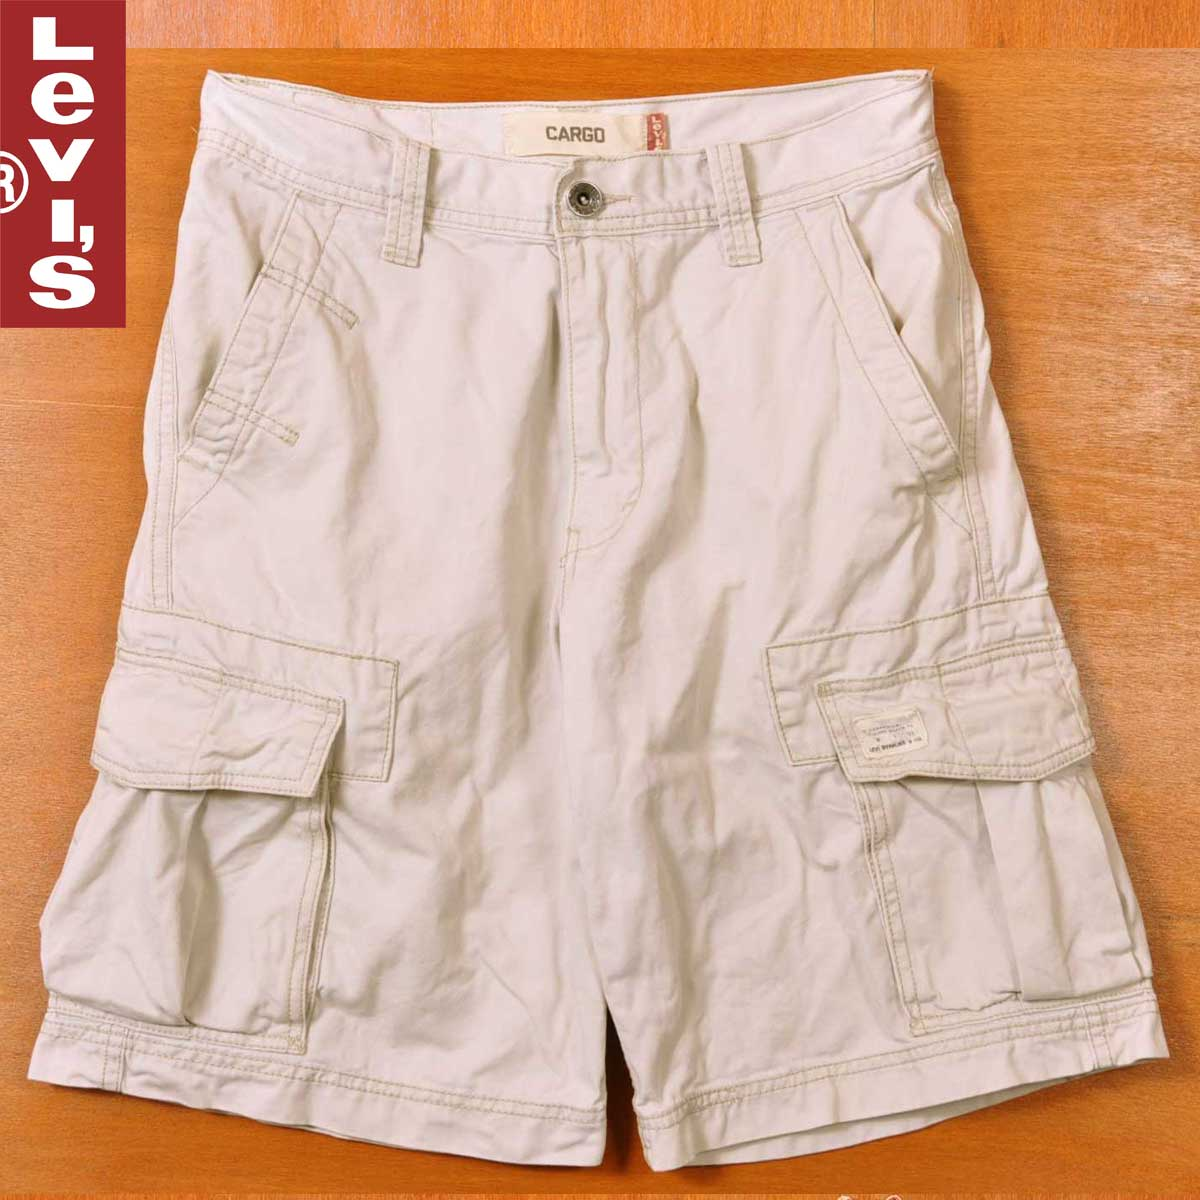 035681a2 Levi's Levis 6 pocket half underwear cargo shorts off-white system W30  equivalency▽ ...